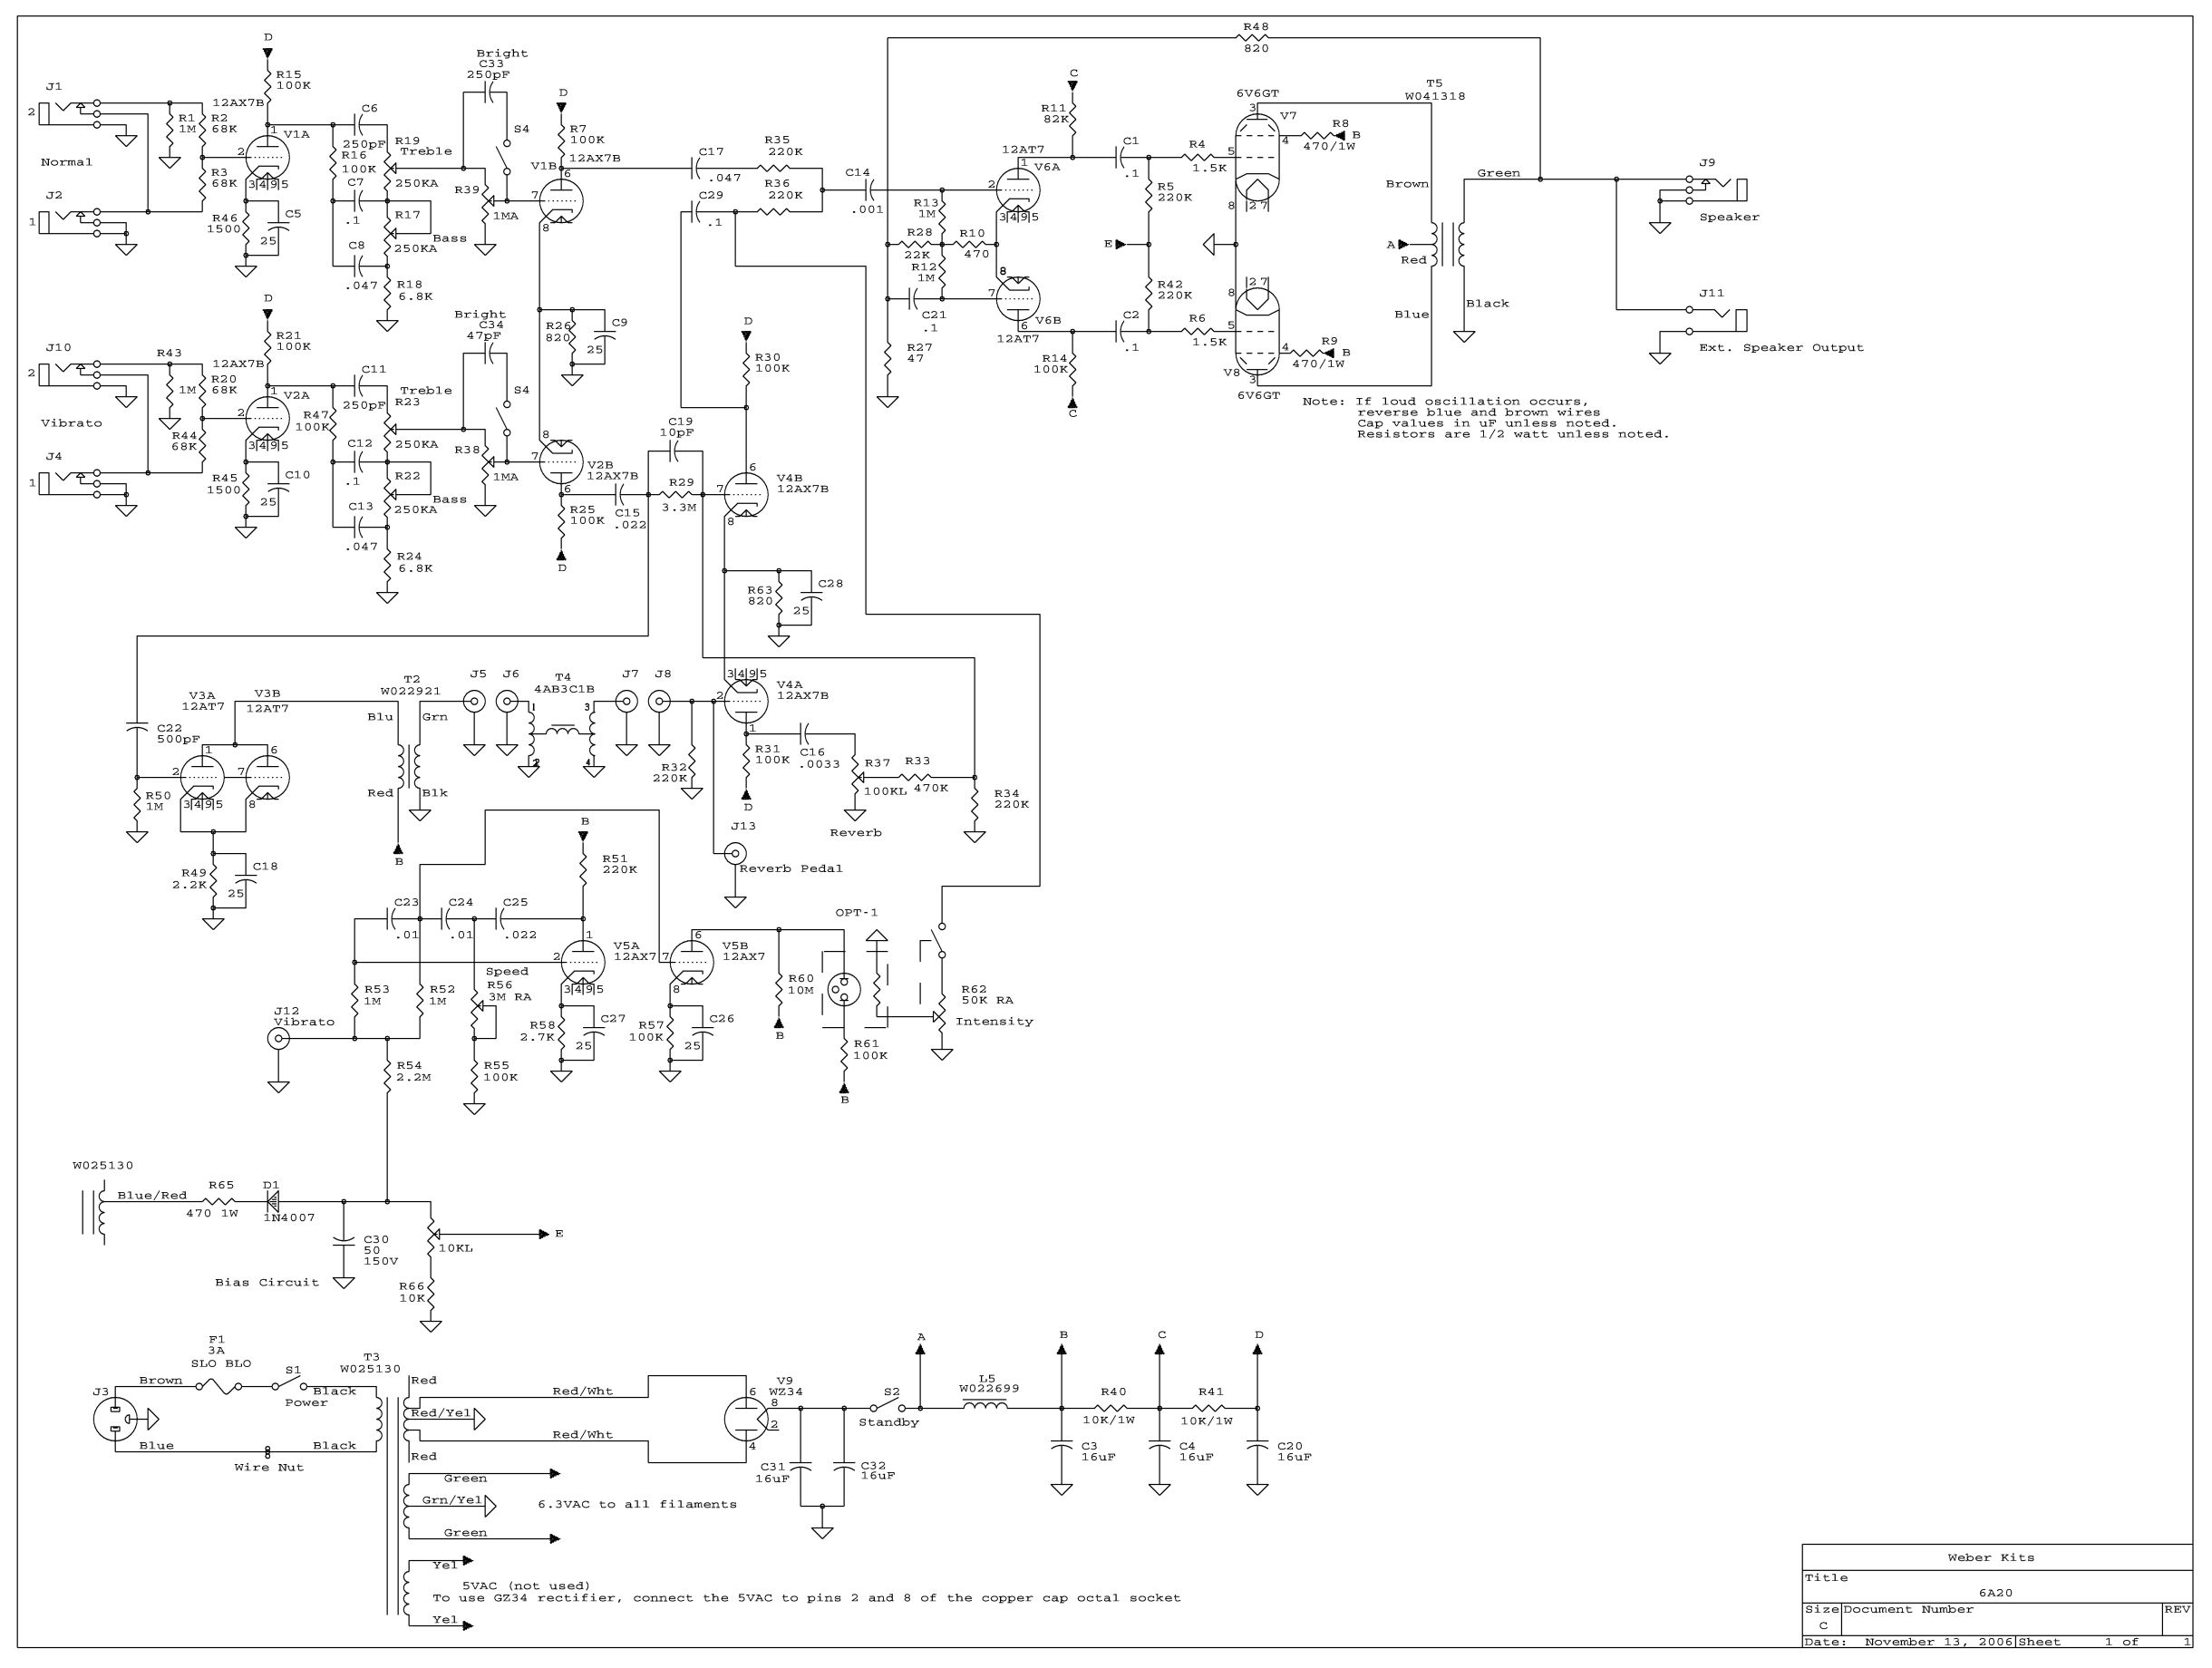 Taco 1632 Wiring Diagram Will Be A Thing 571 Zone Valve Power Head Electrical Diagrams Rh Wiringforall Today Piping Valves Connection